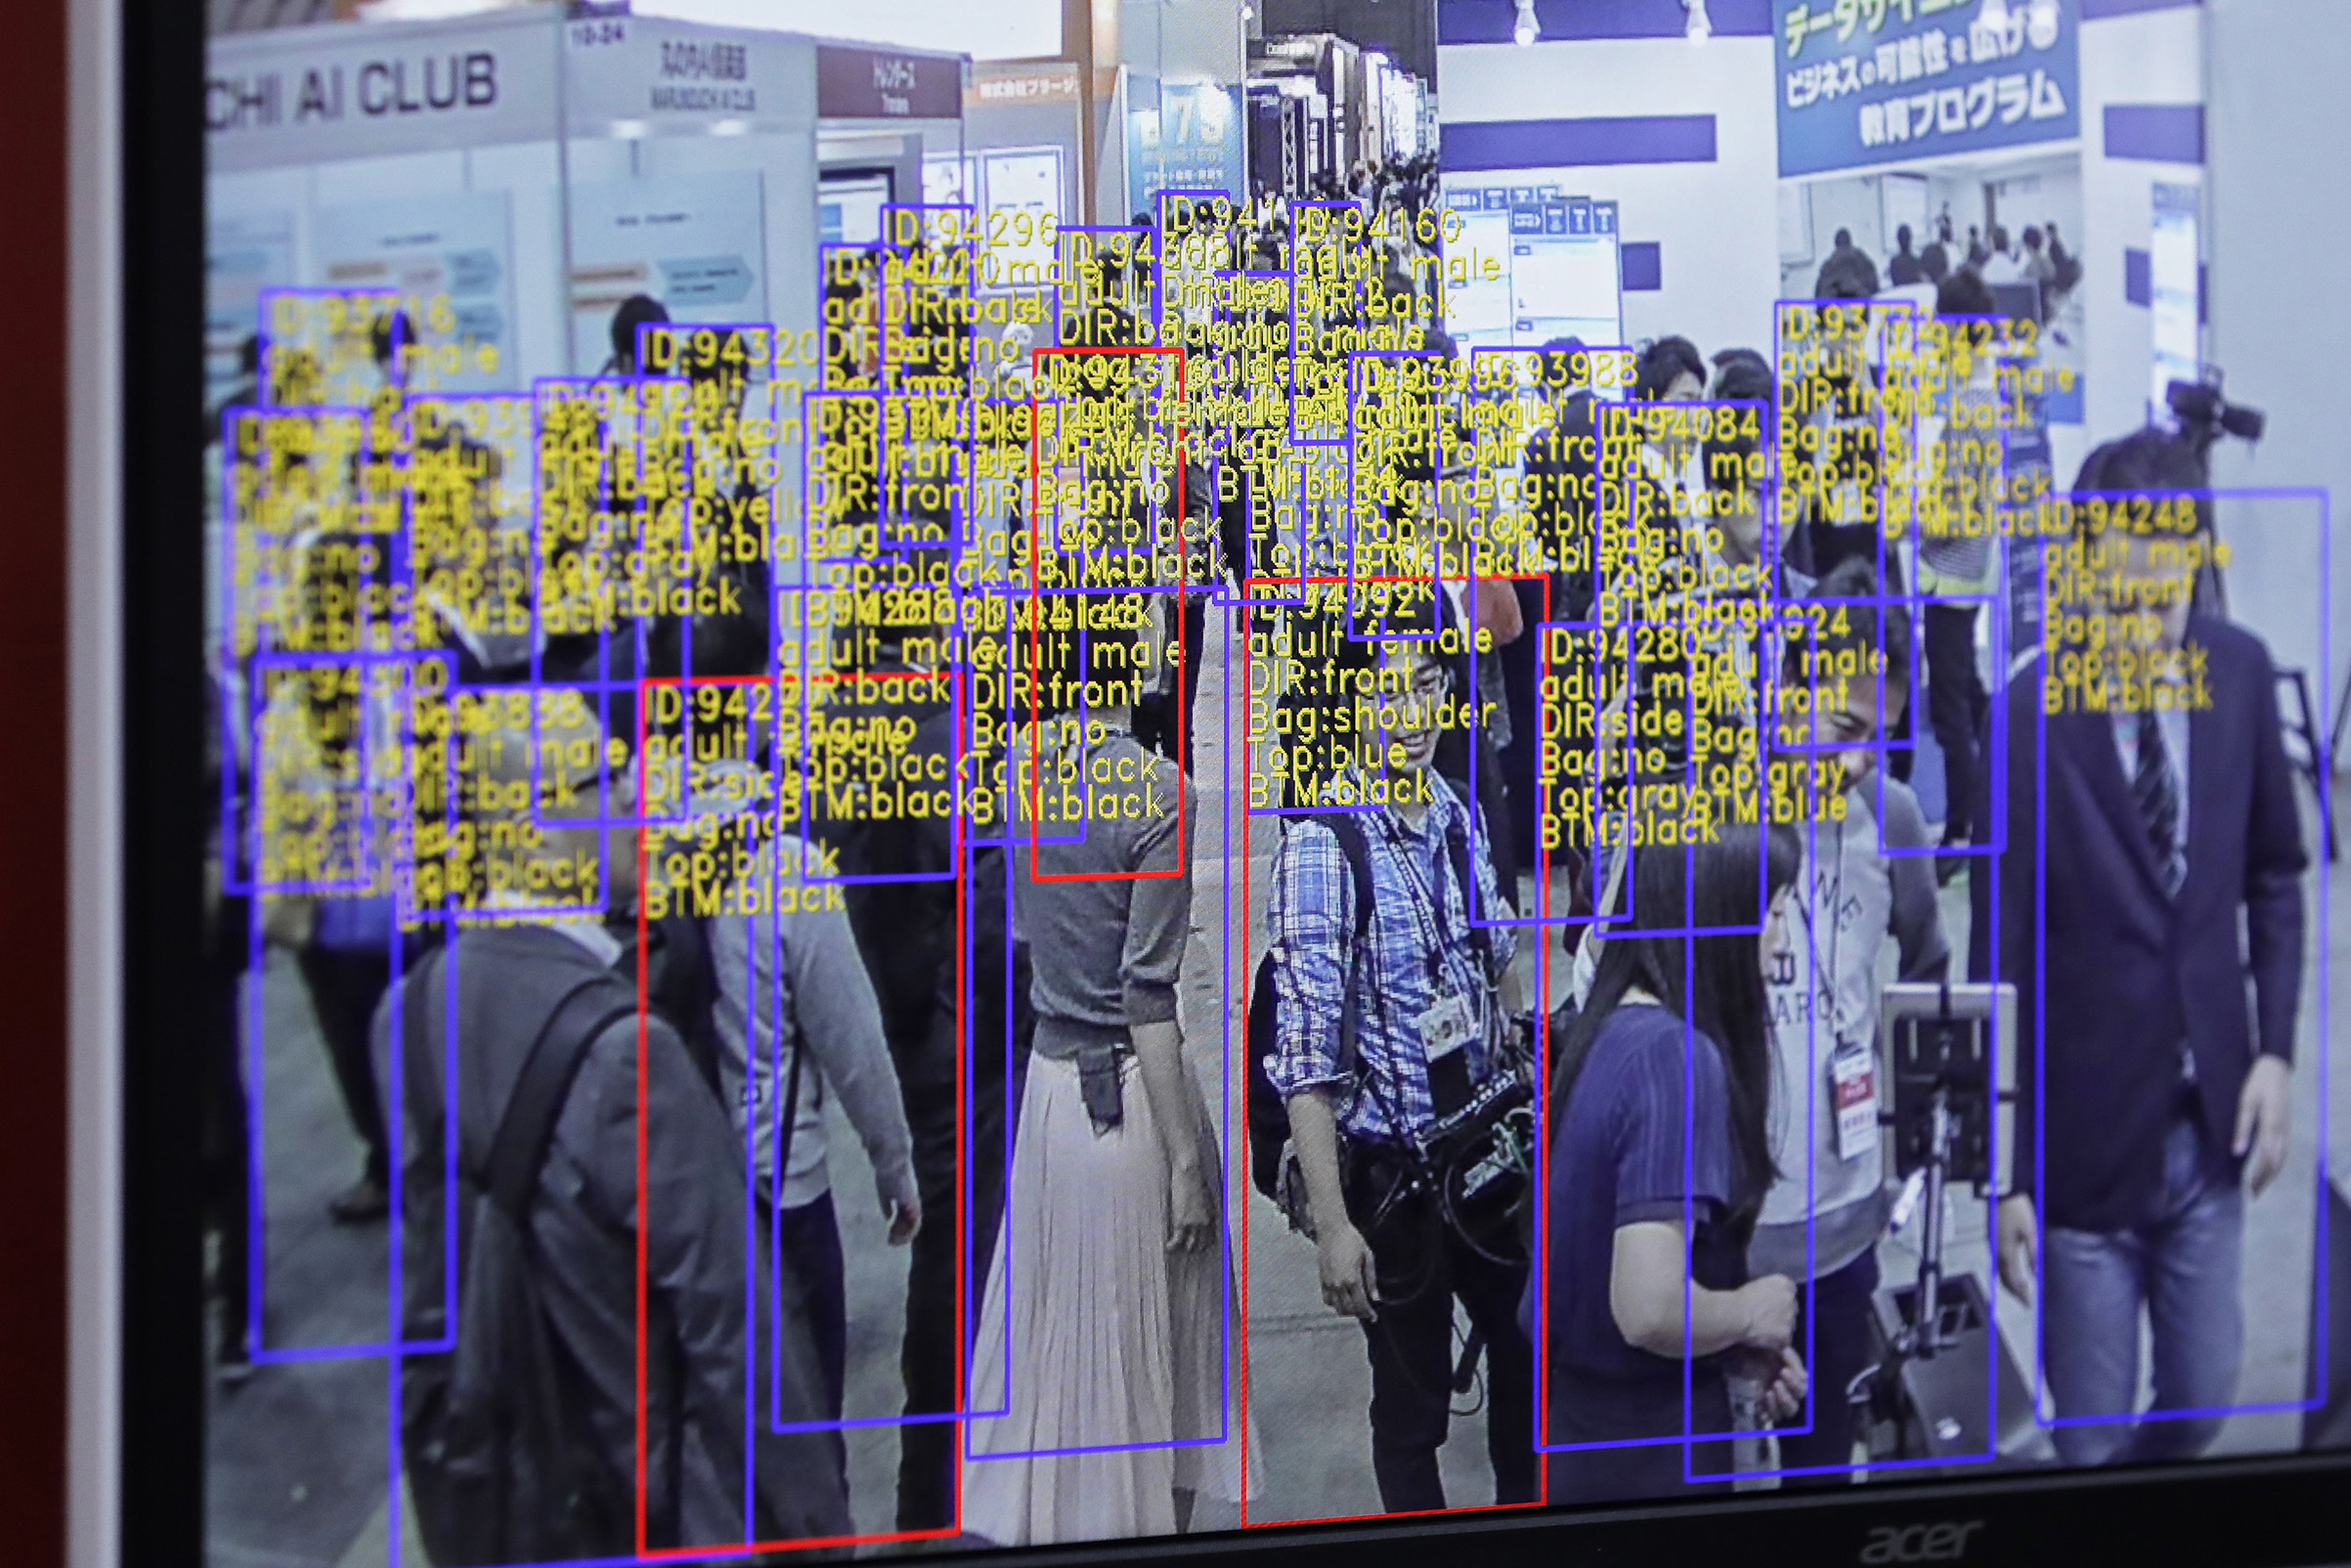 Object detection and tracking displayed at the Artificial Intelligence Exhibition & Conference in Tokyo, Japan, on April 4, 2018.